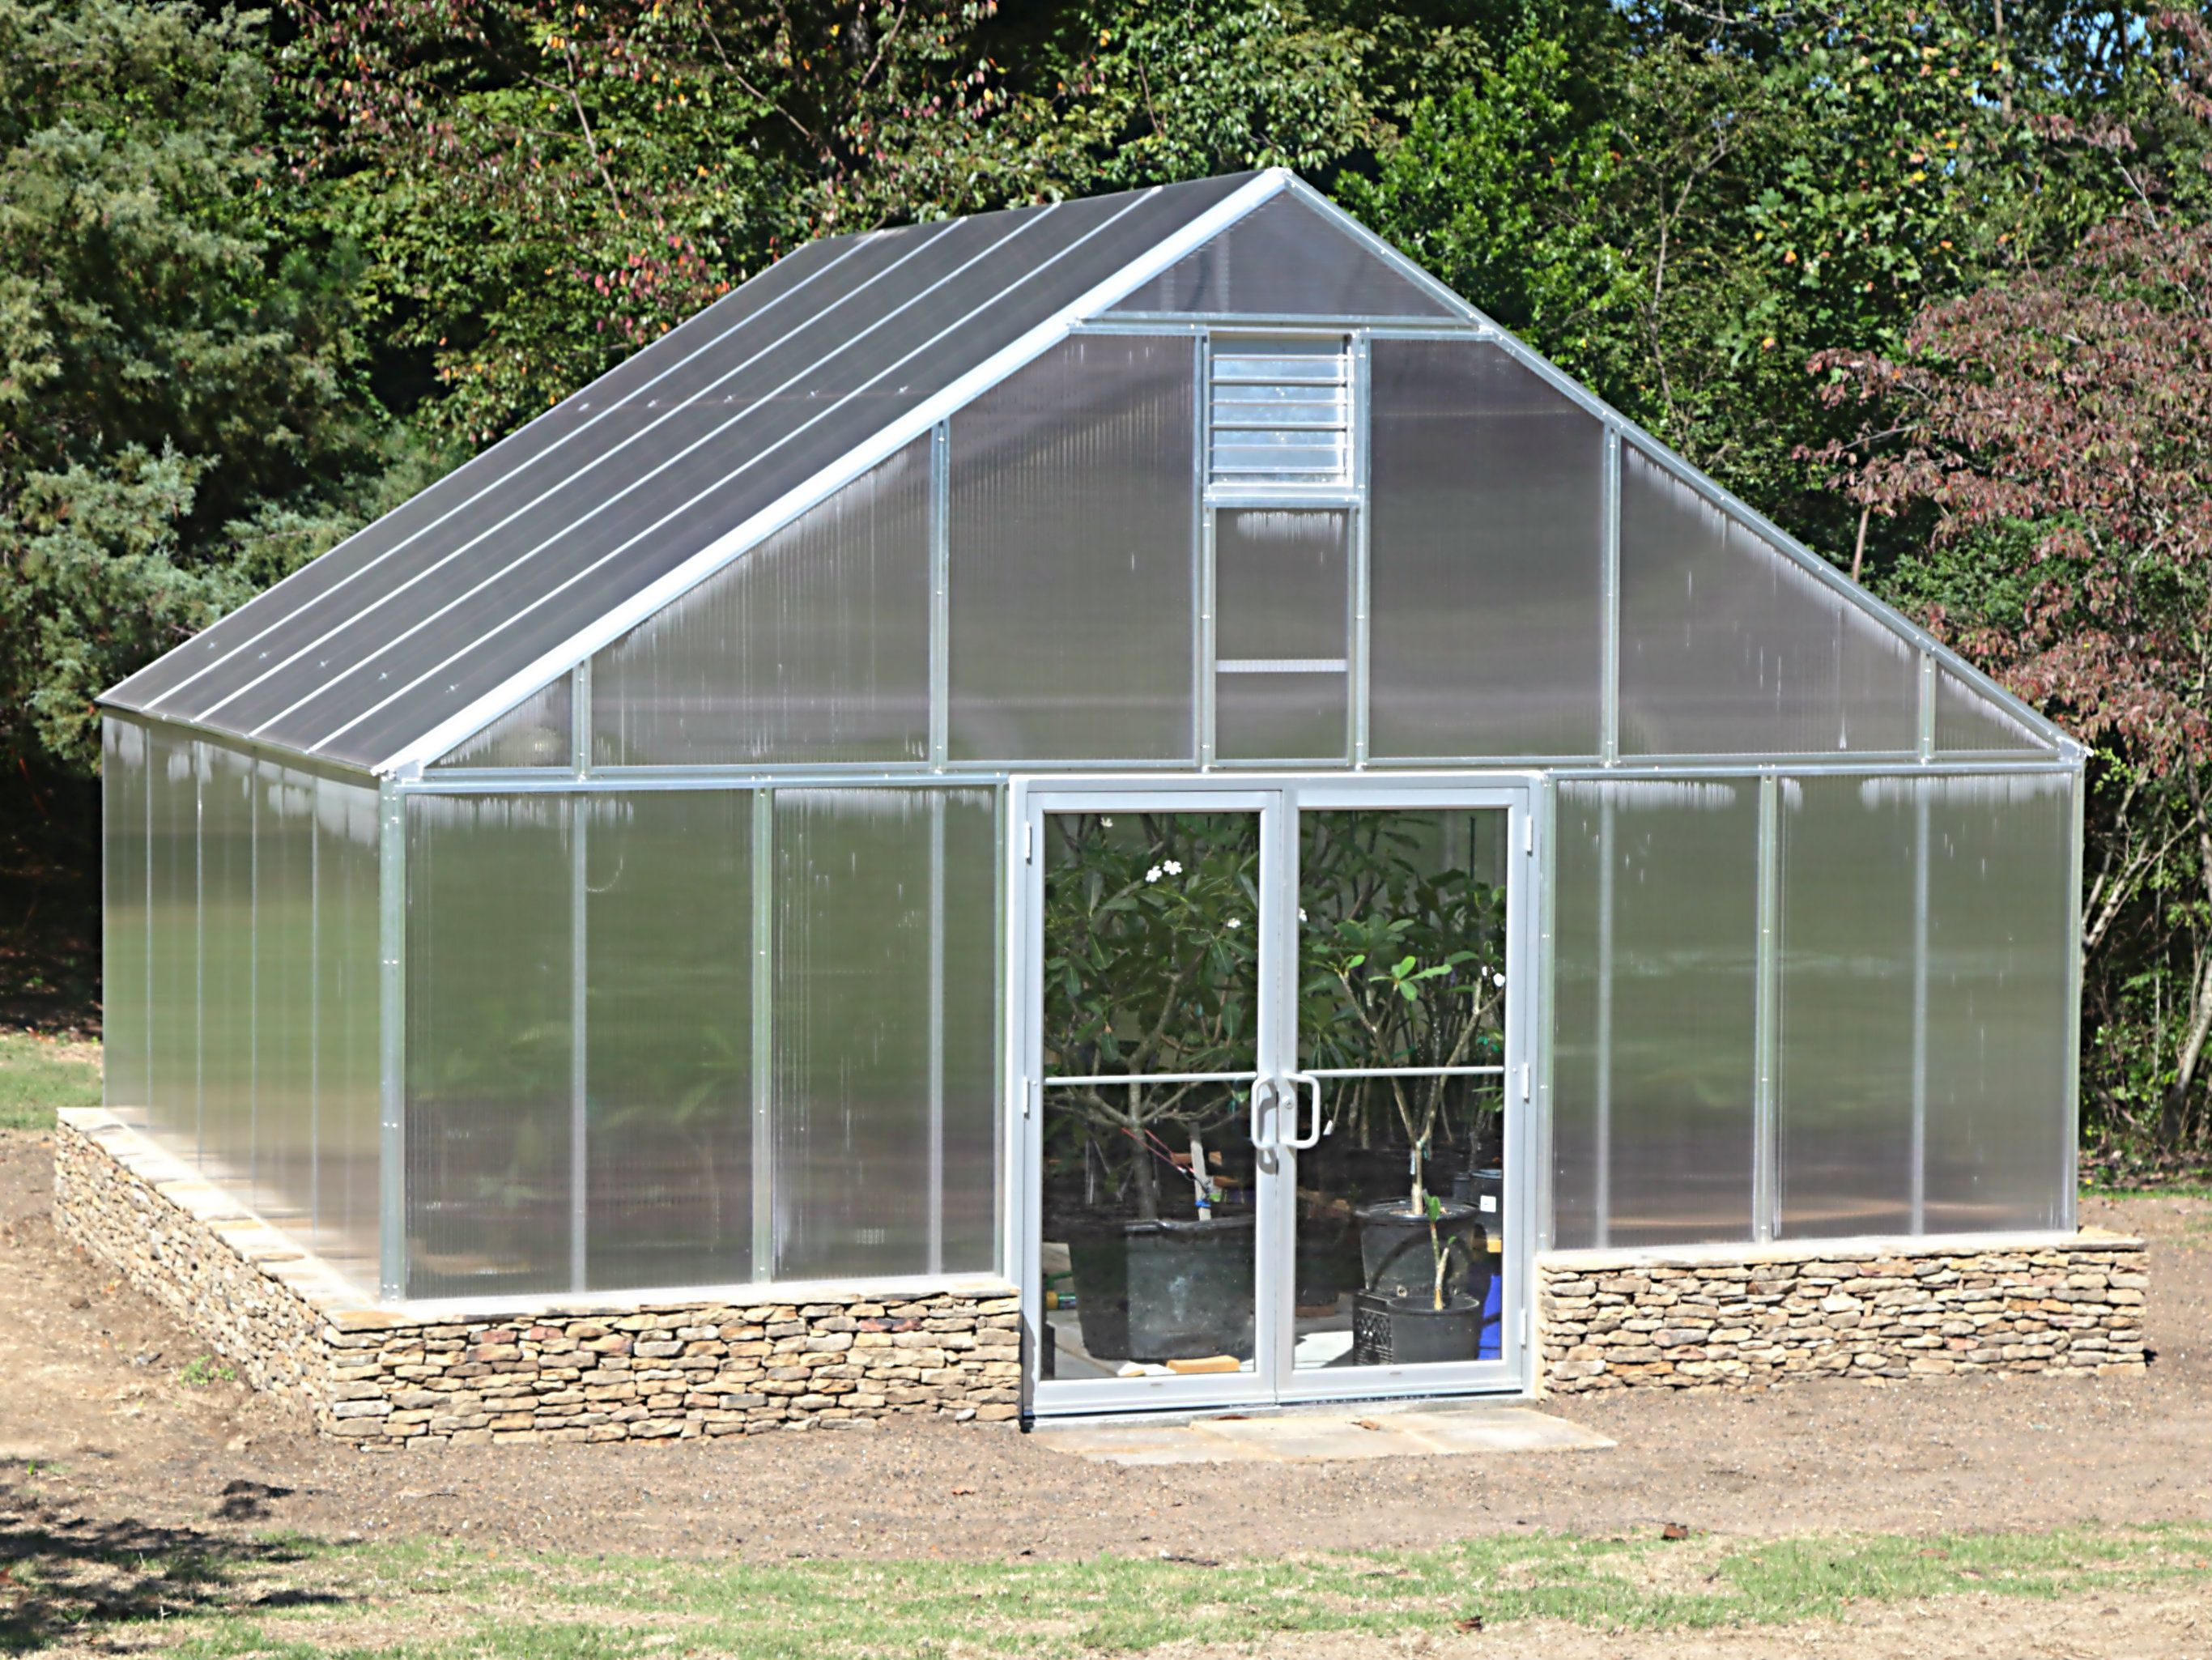 This beautiful 20' x 20' 16mm five-wall polycarbonate greenhouse is on